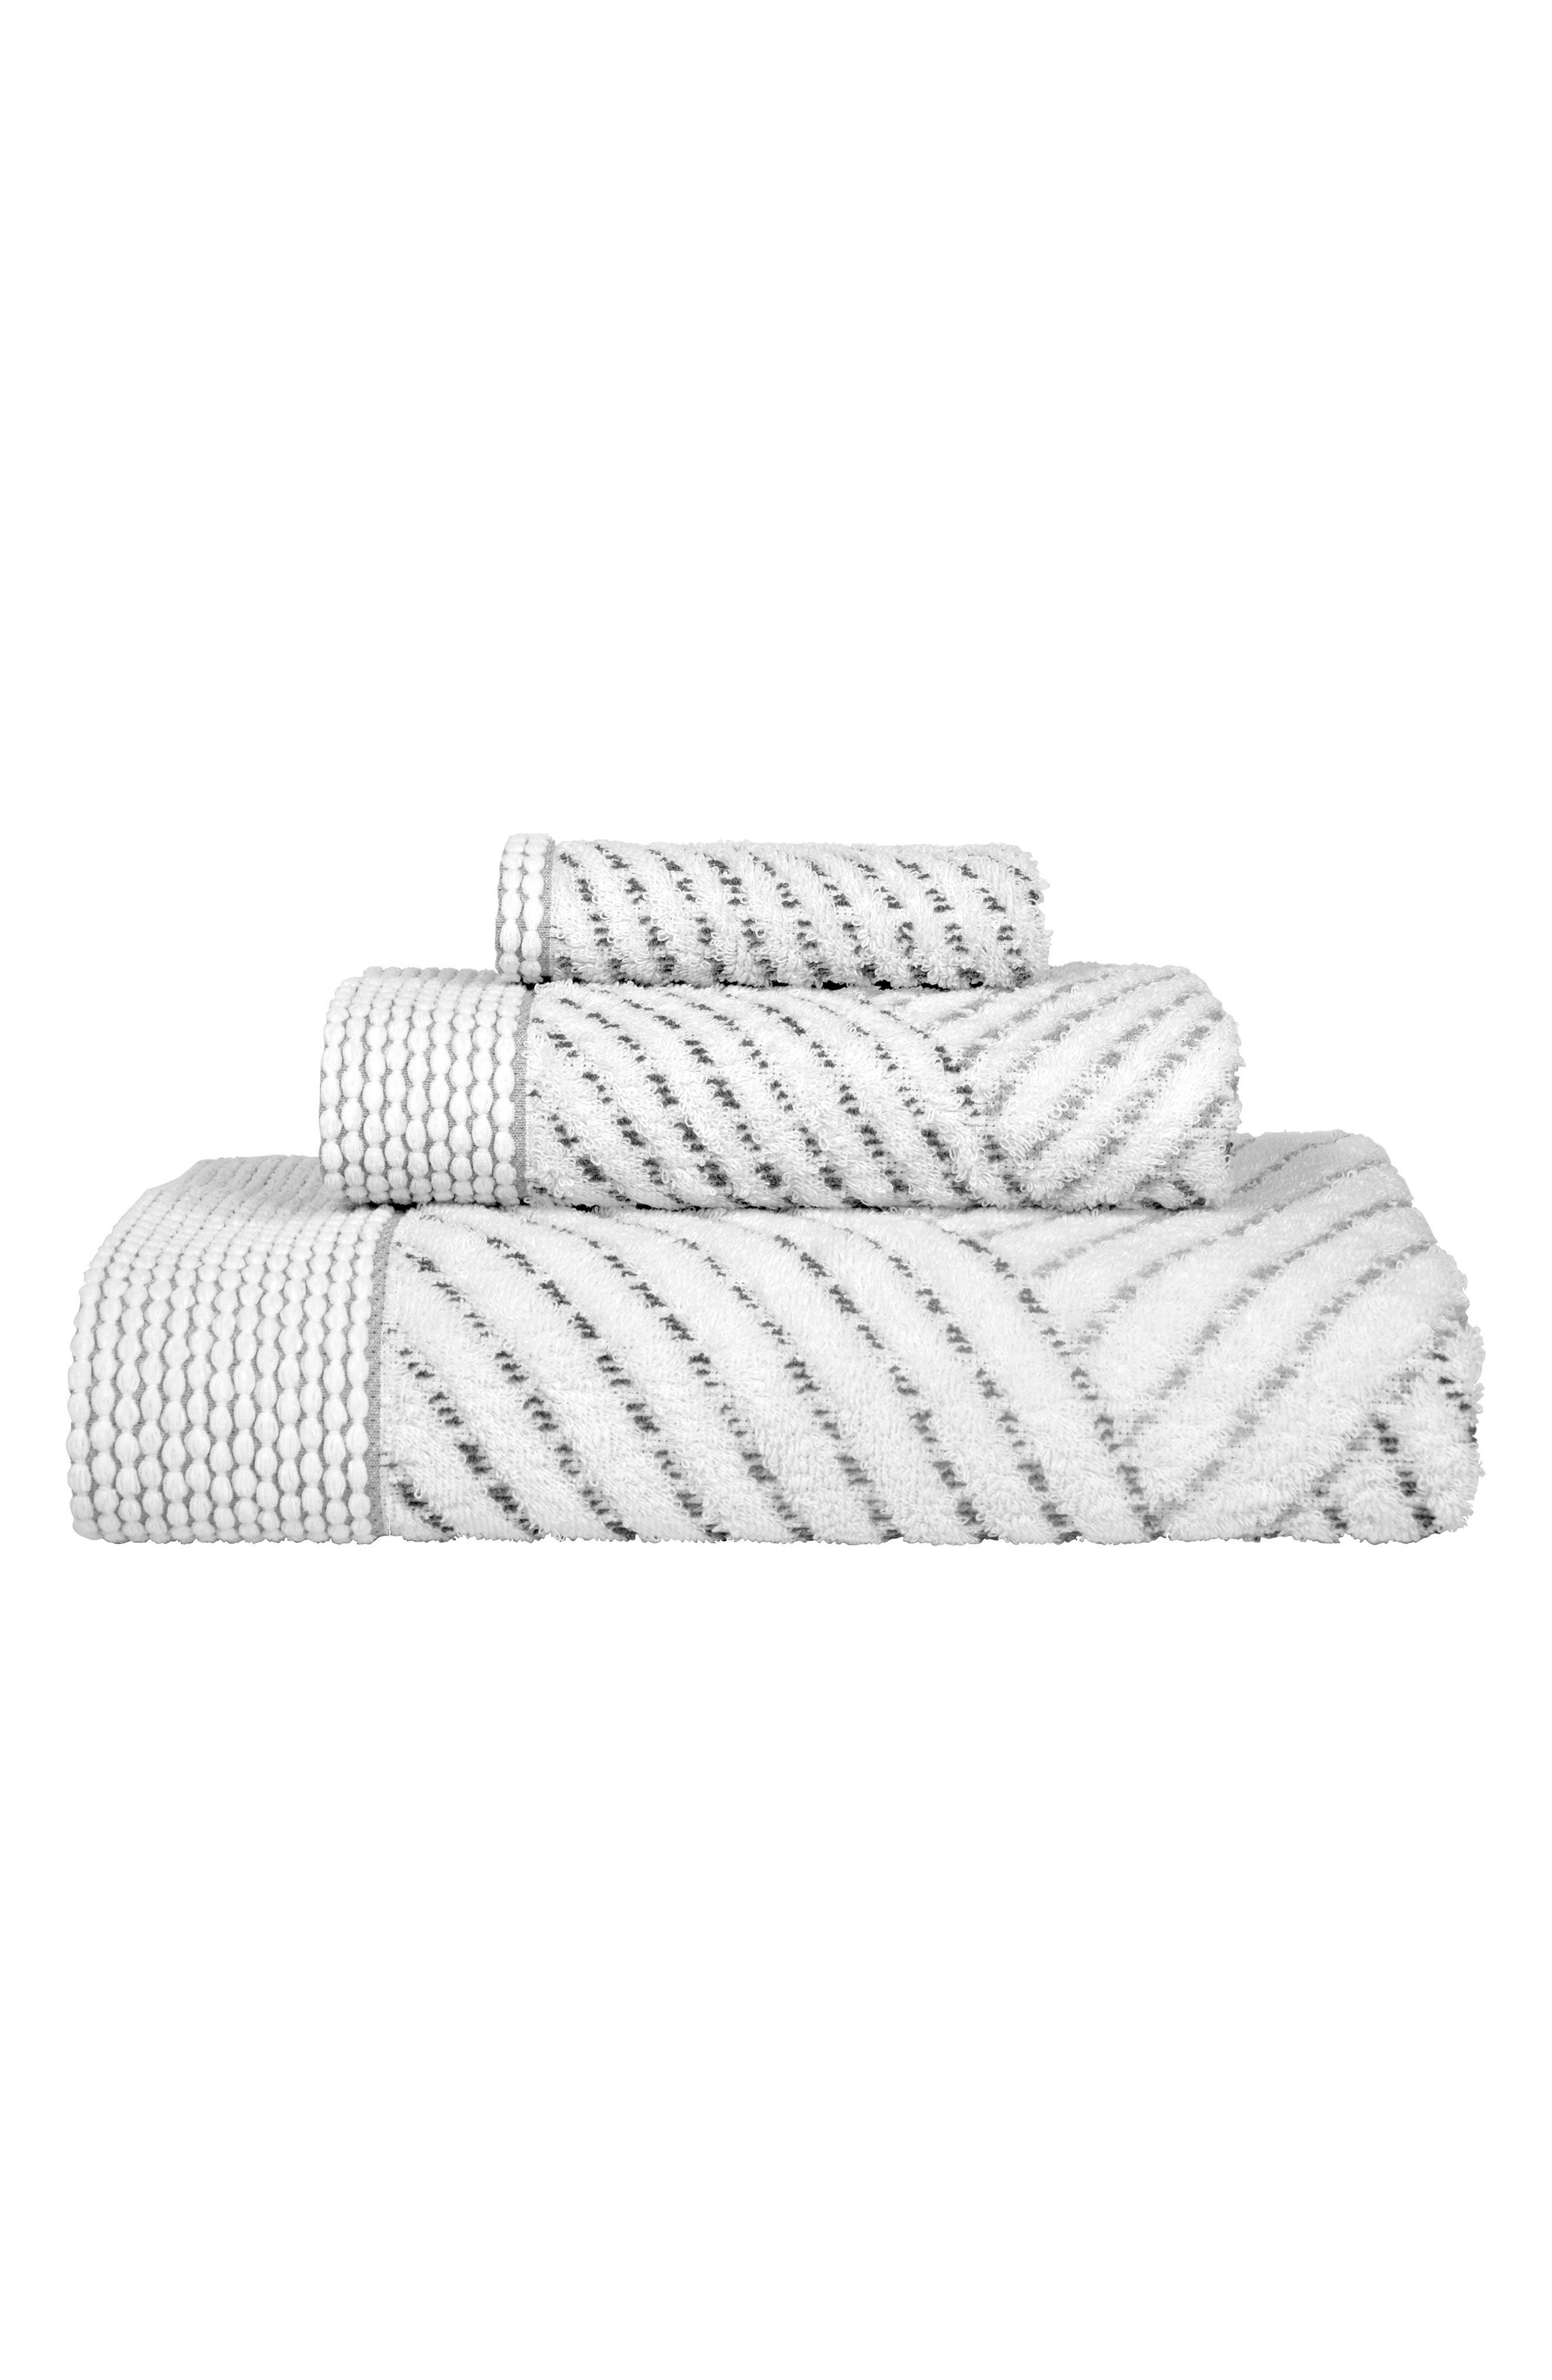 Sazid Hand Towel,                             Main thumbnail 1, color,                             020